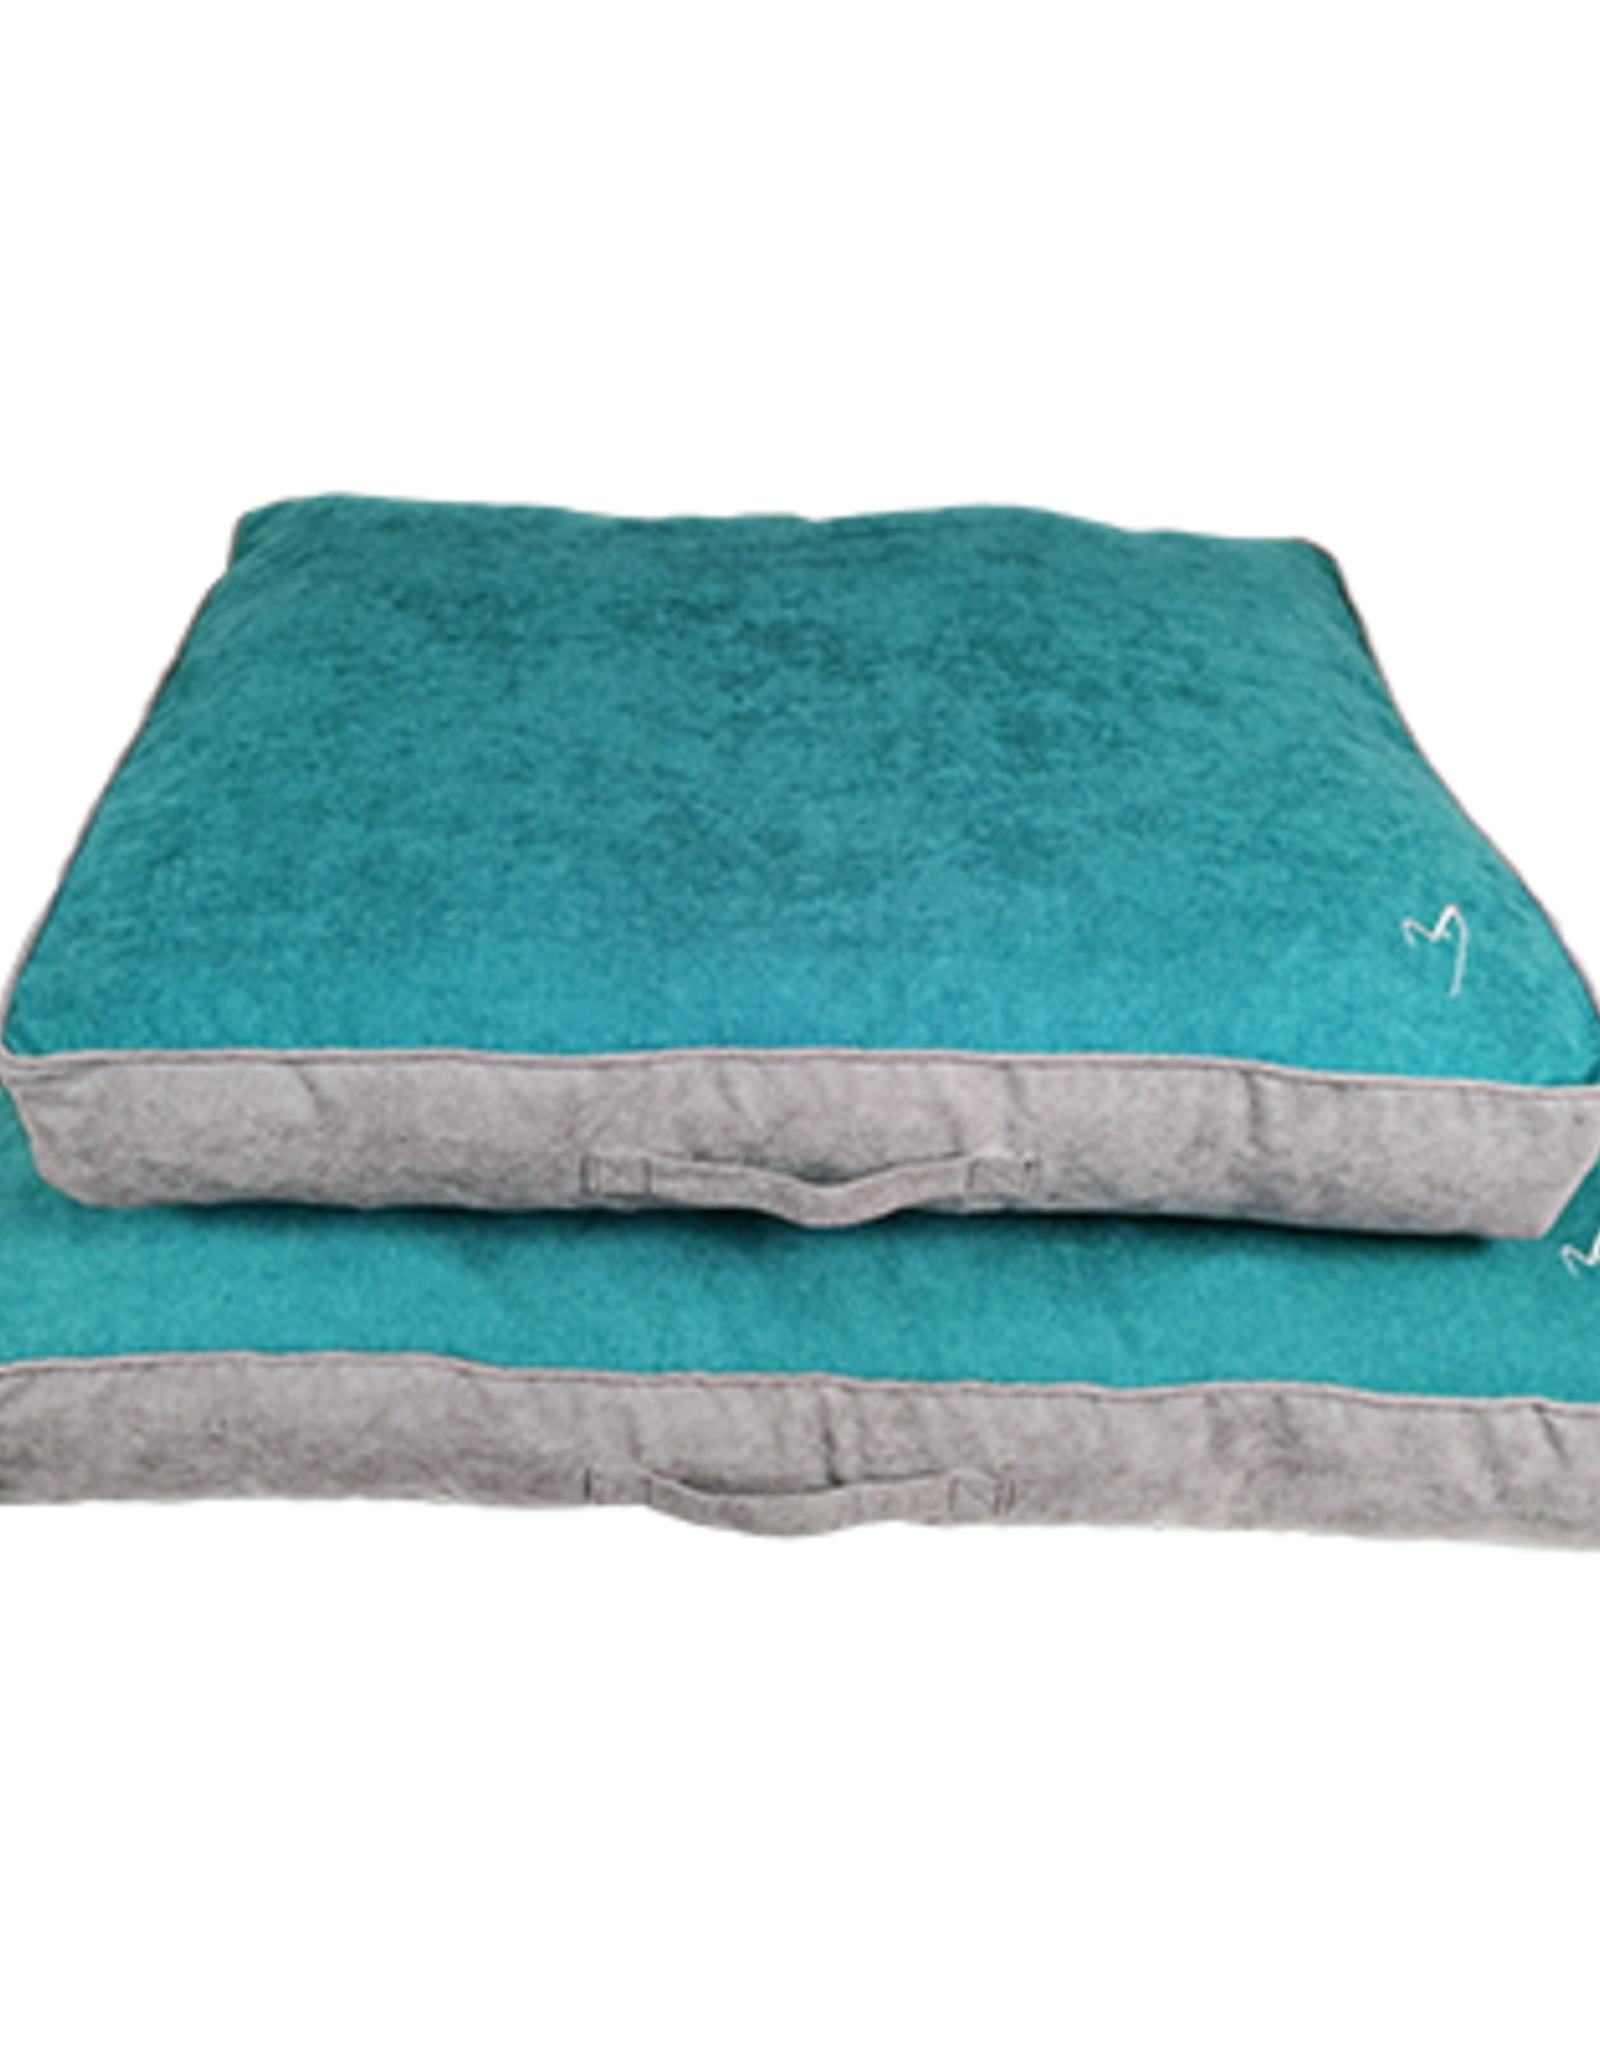 Gor Pets Camden Sleeper Dog Bed with Removable Cover in Teal